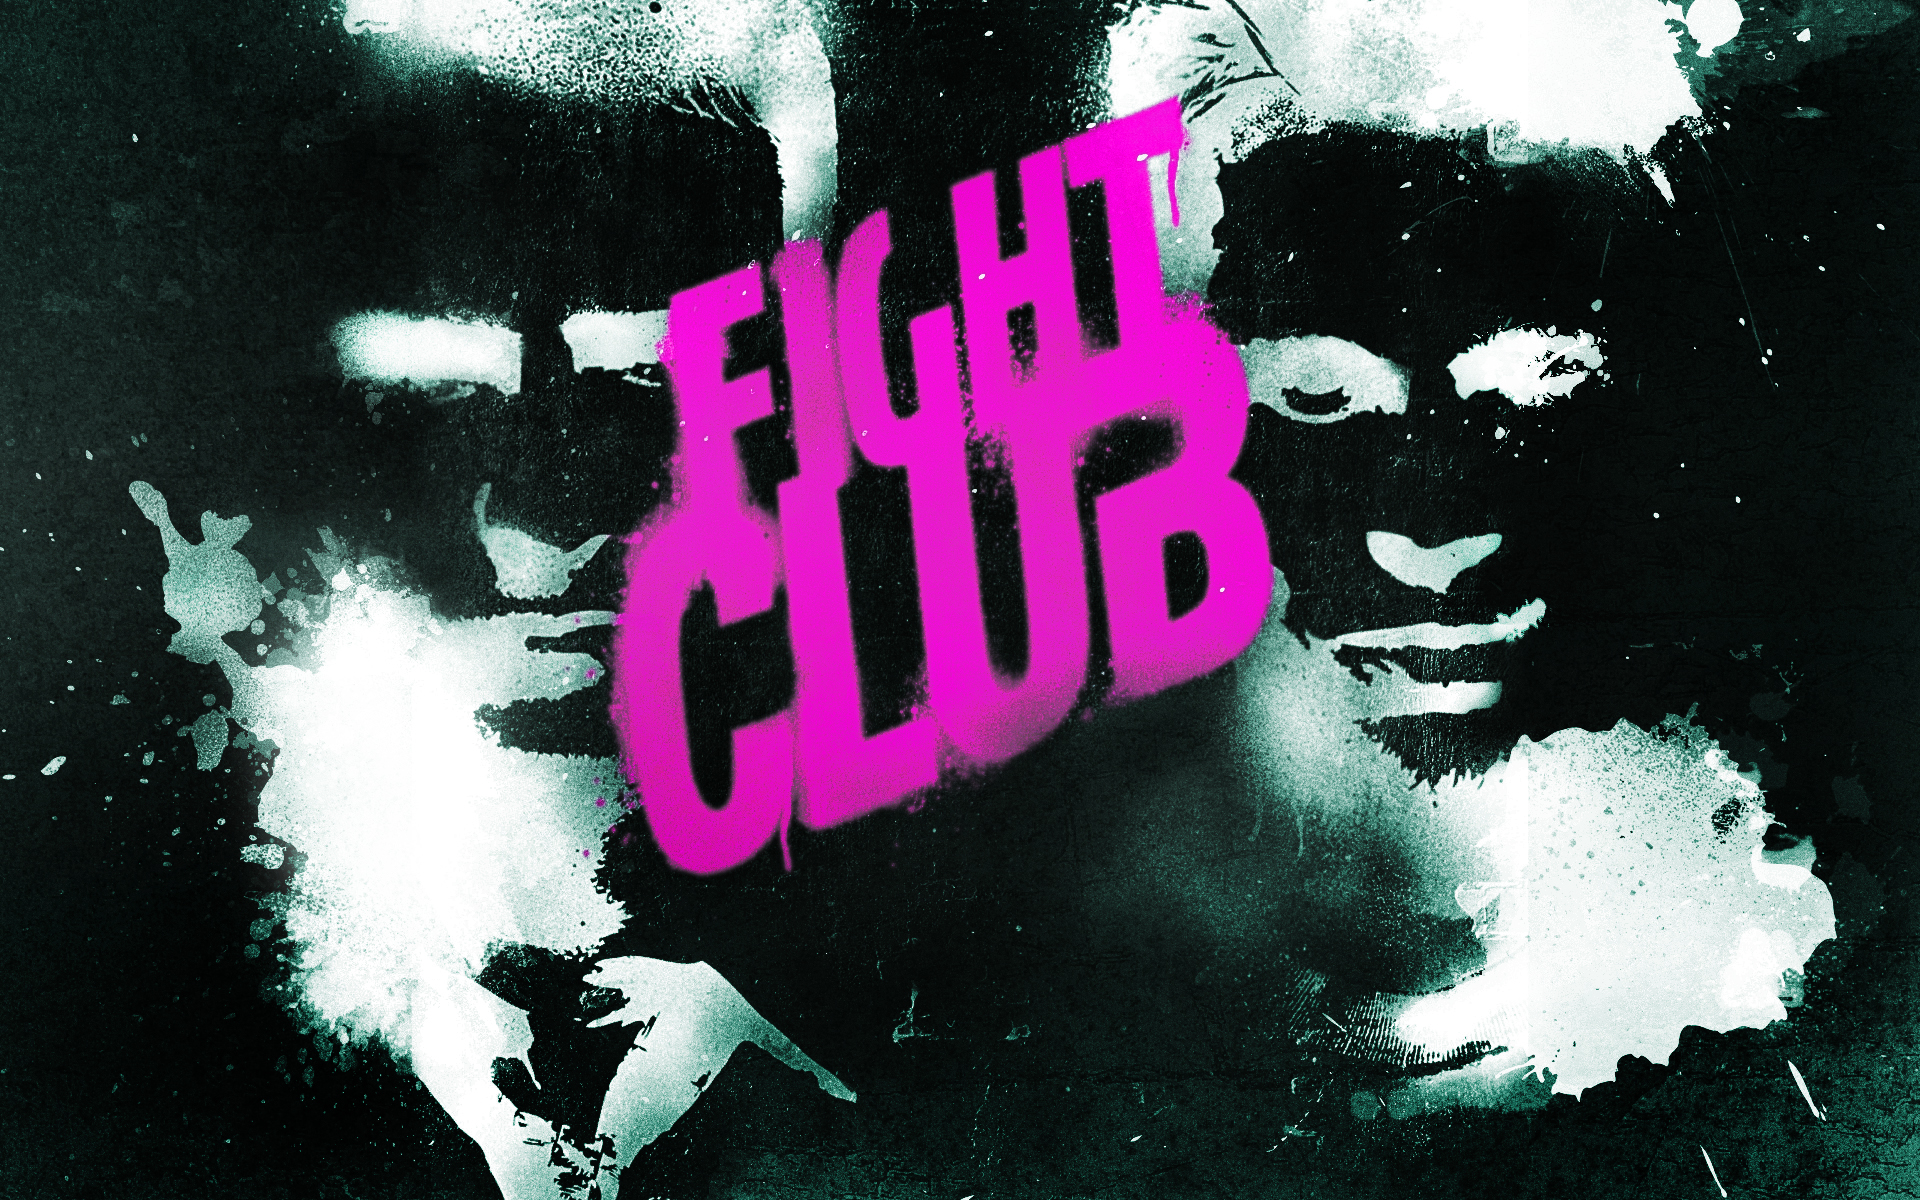 Movies Fight Club 1920 1200 in Wallpapers 1920x1200